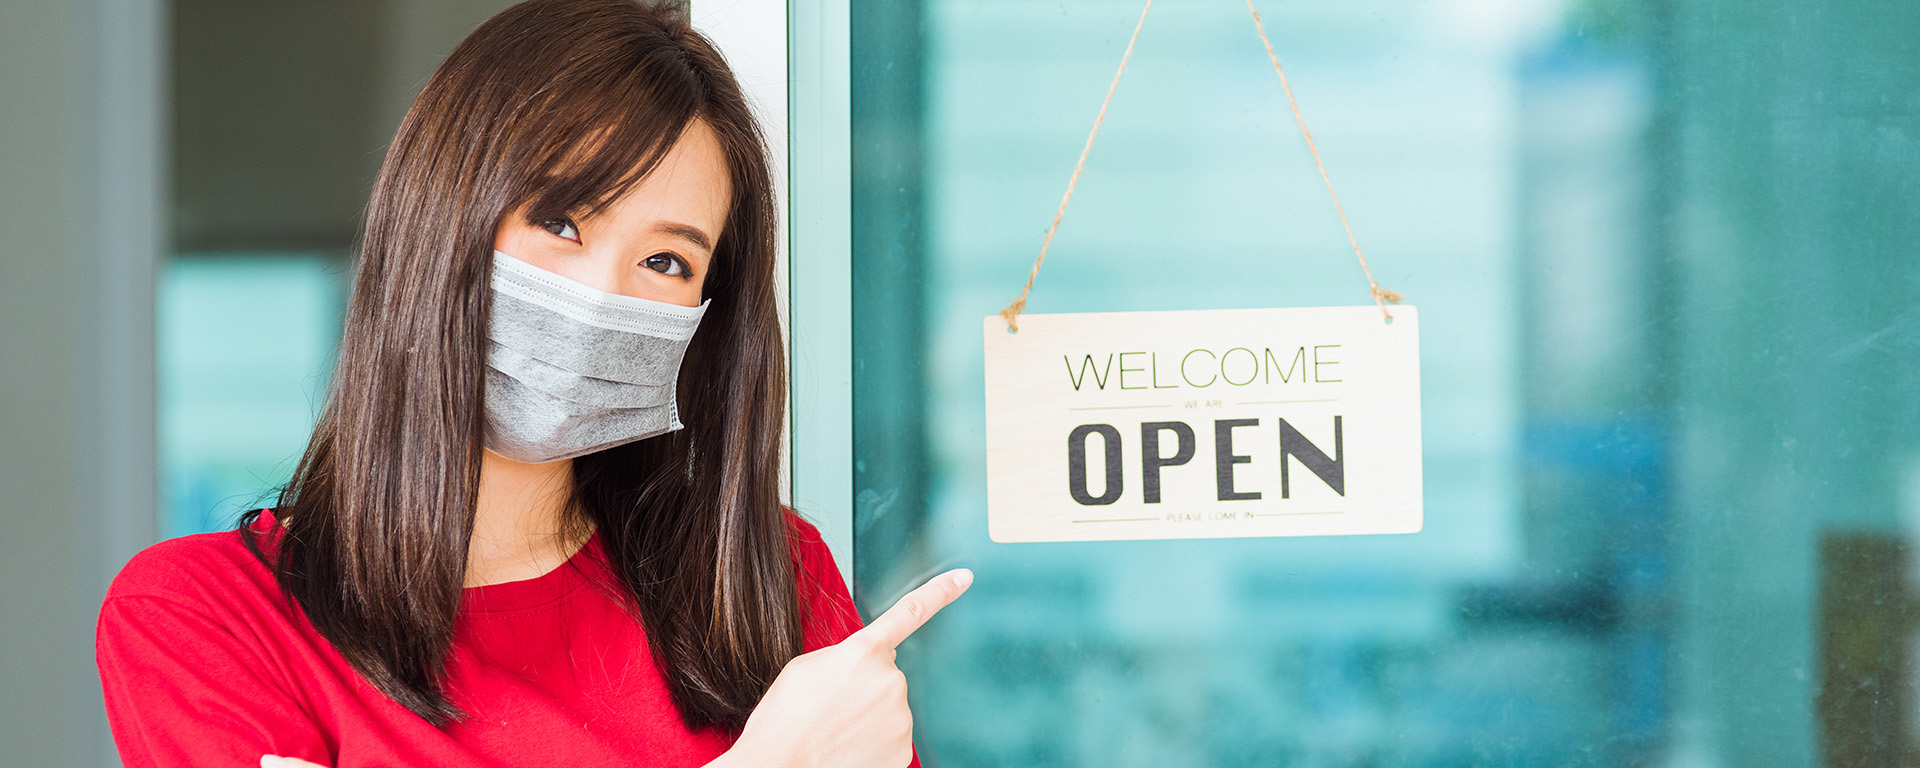 woman with mask on pointing at welcome we are open sign